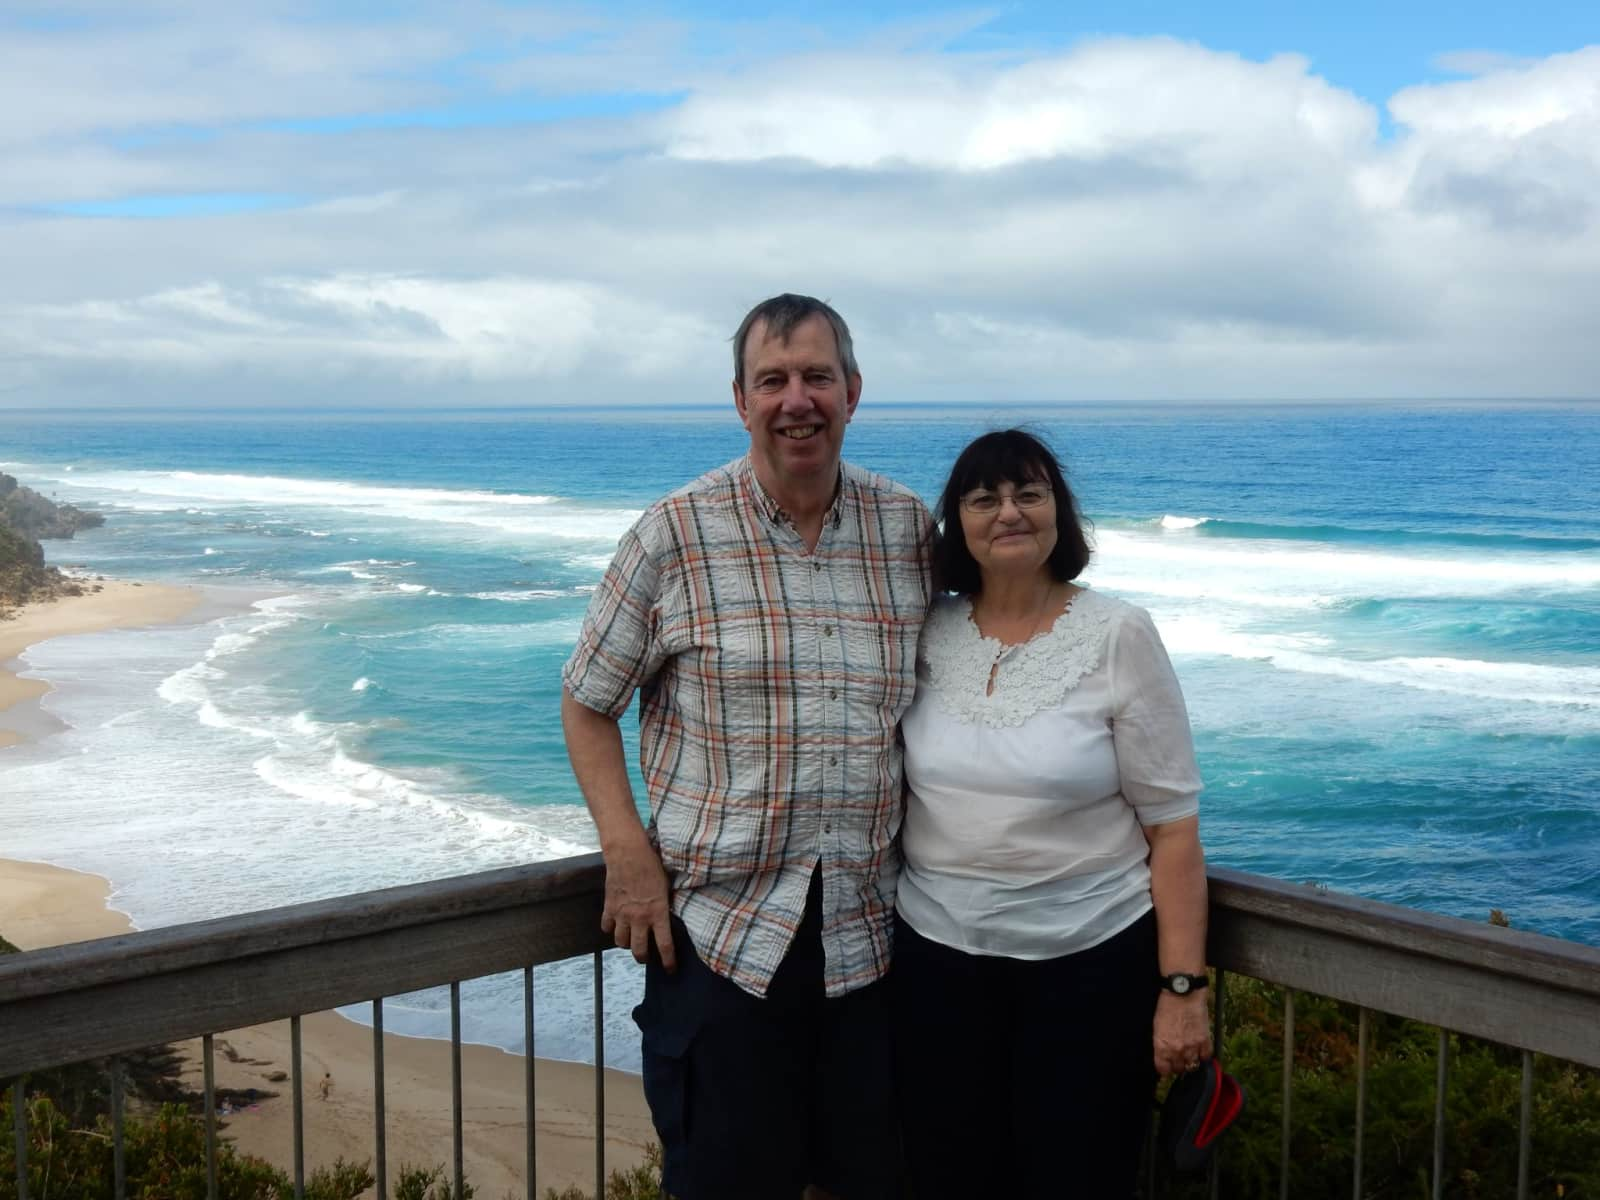 Jane richard & Richard from Bexhill-on-Sea, United Kingdom